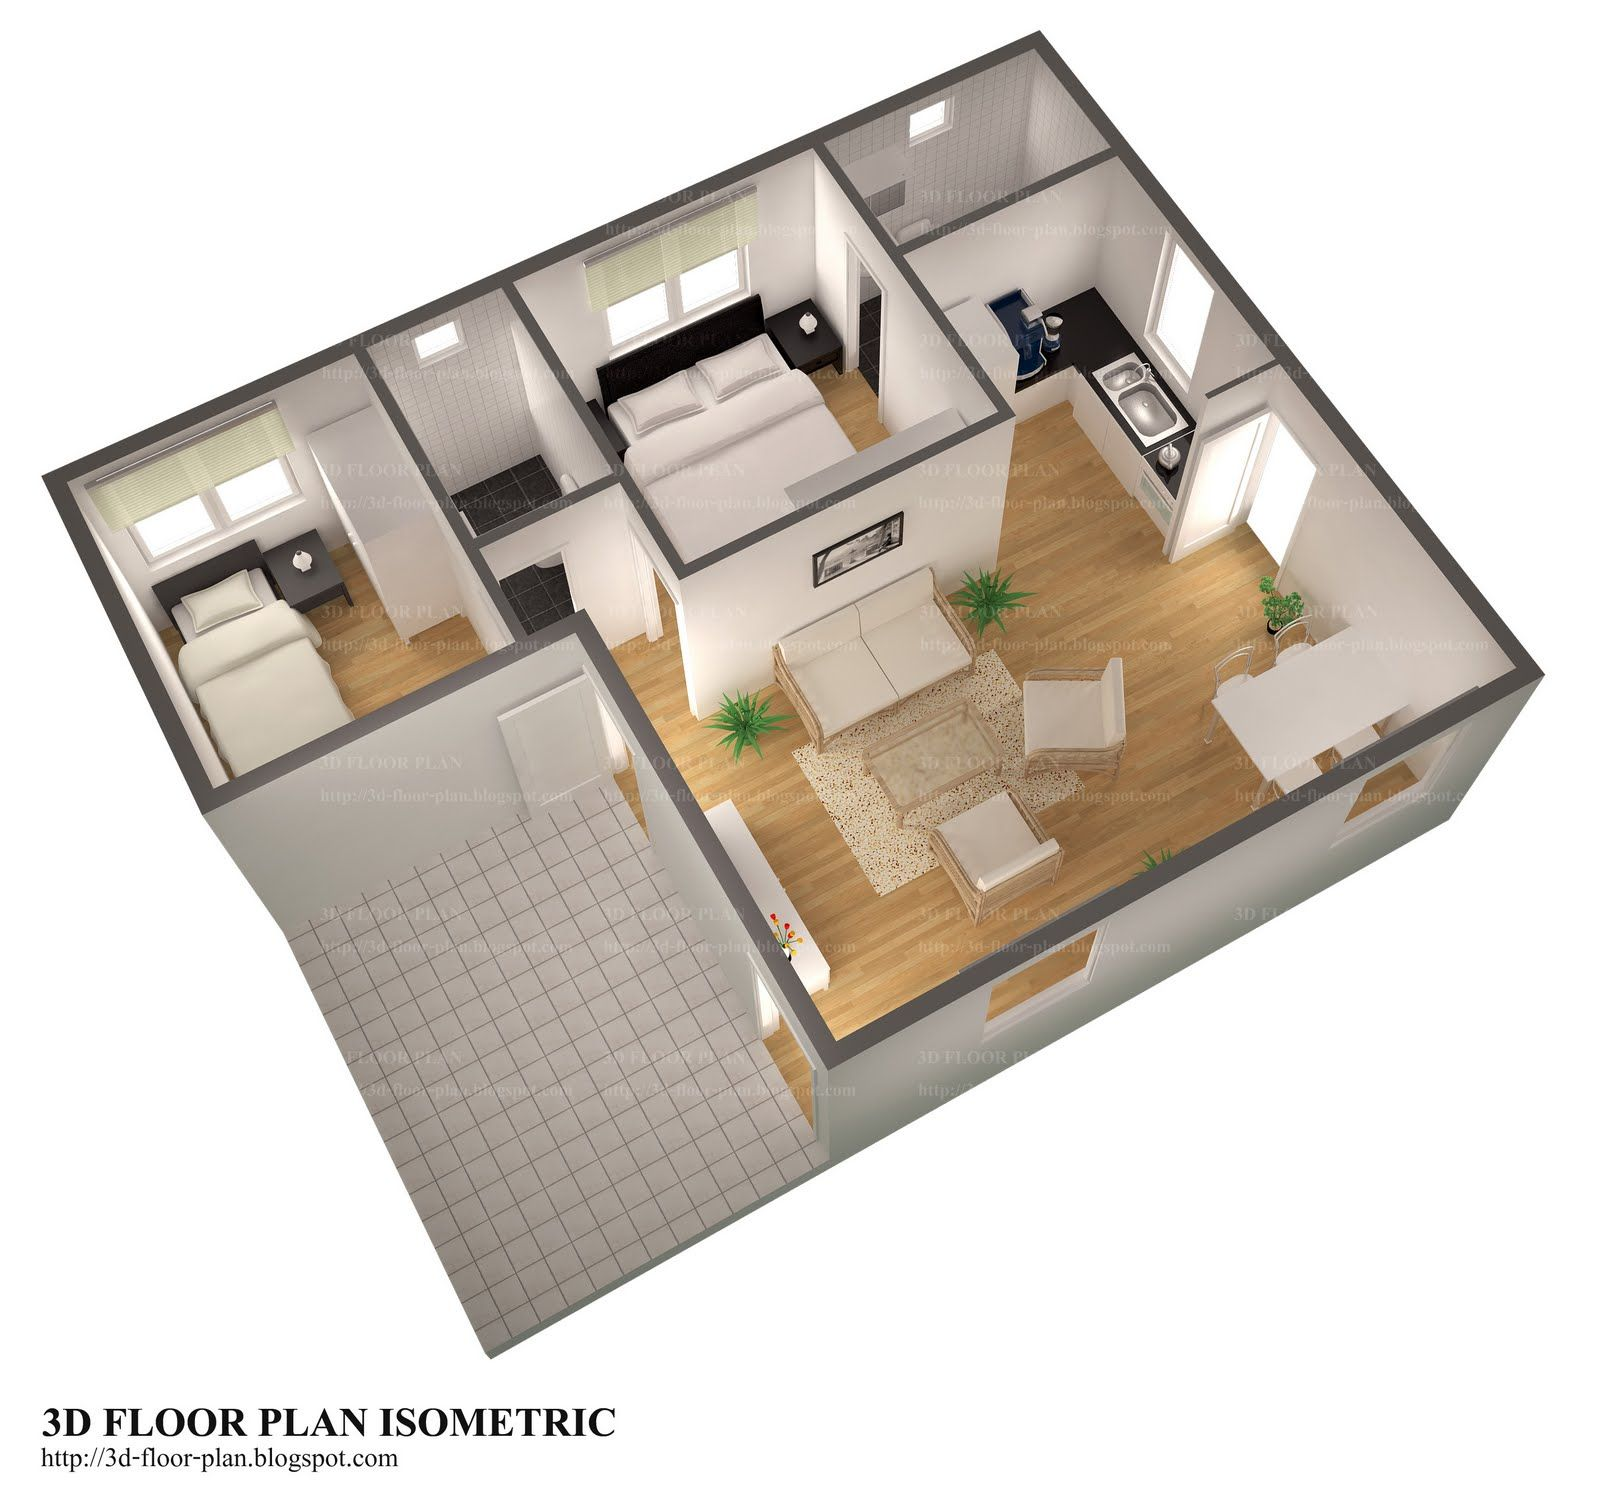 3d floor plan 3d floor plan isometric architecture pinterest